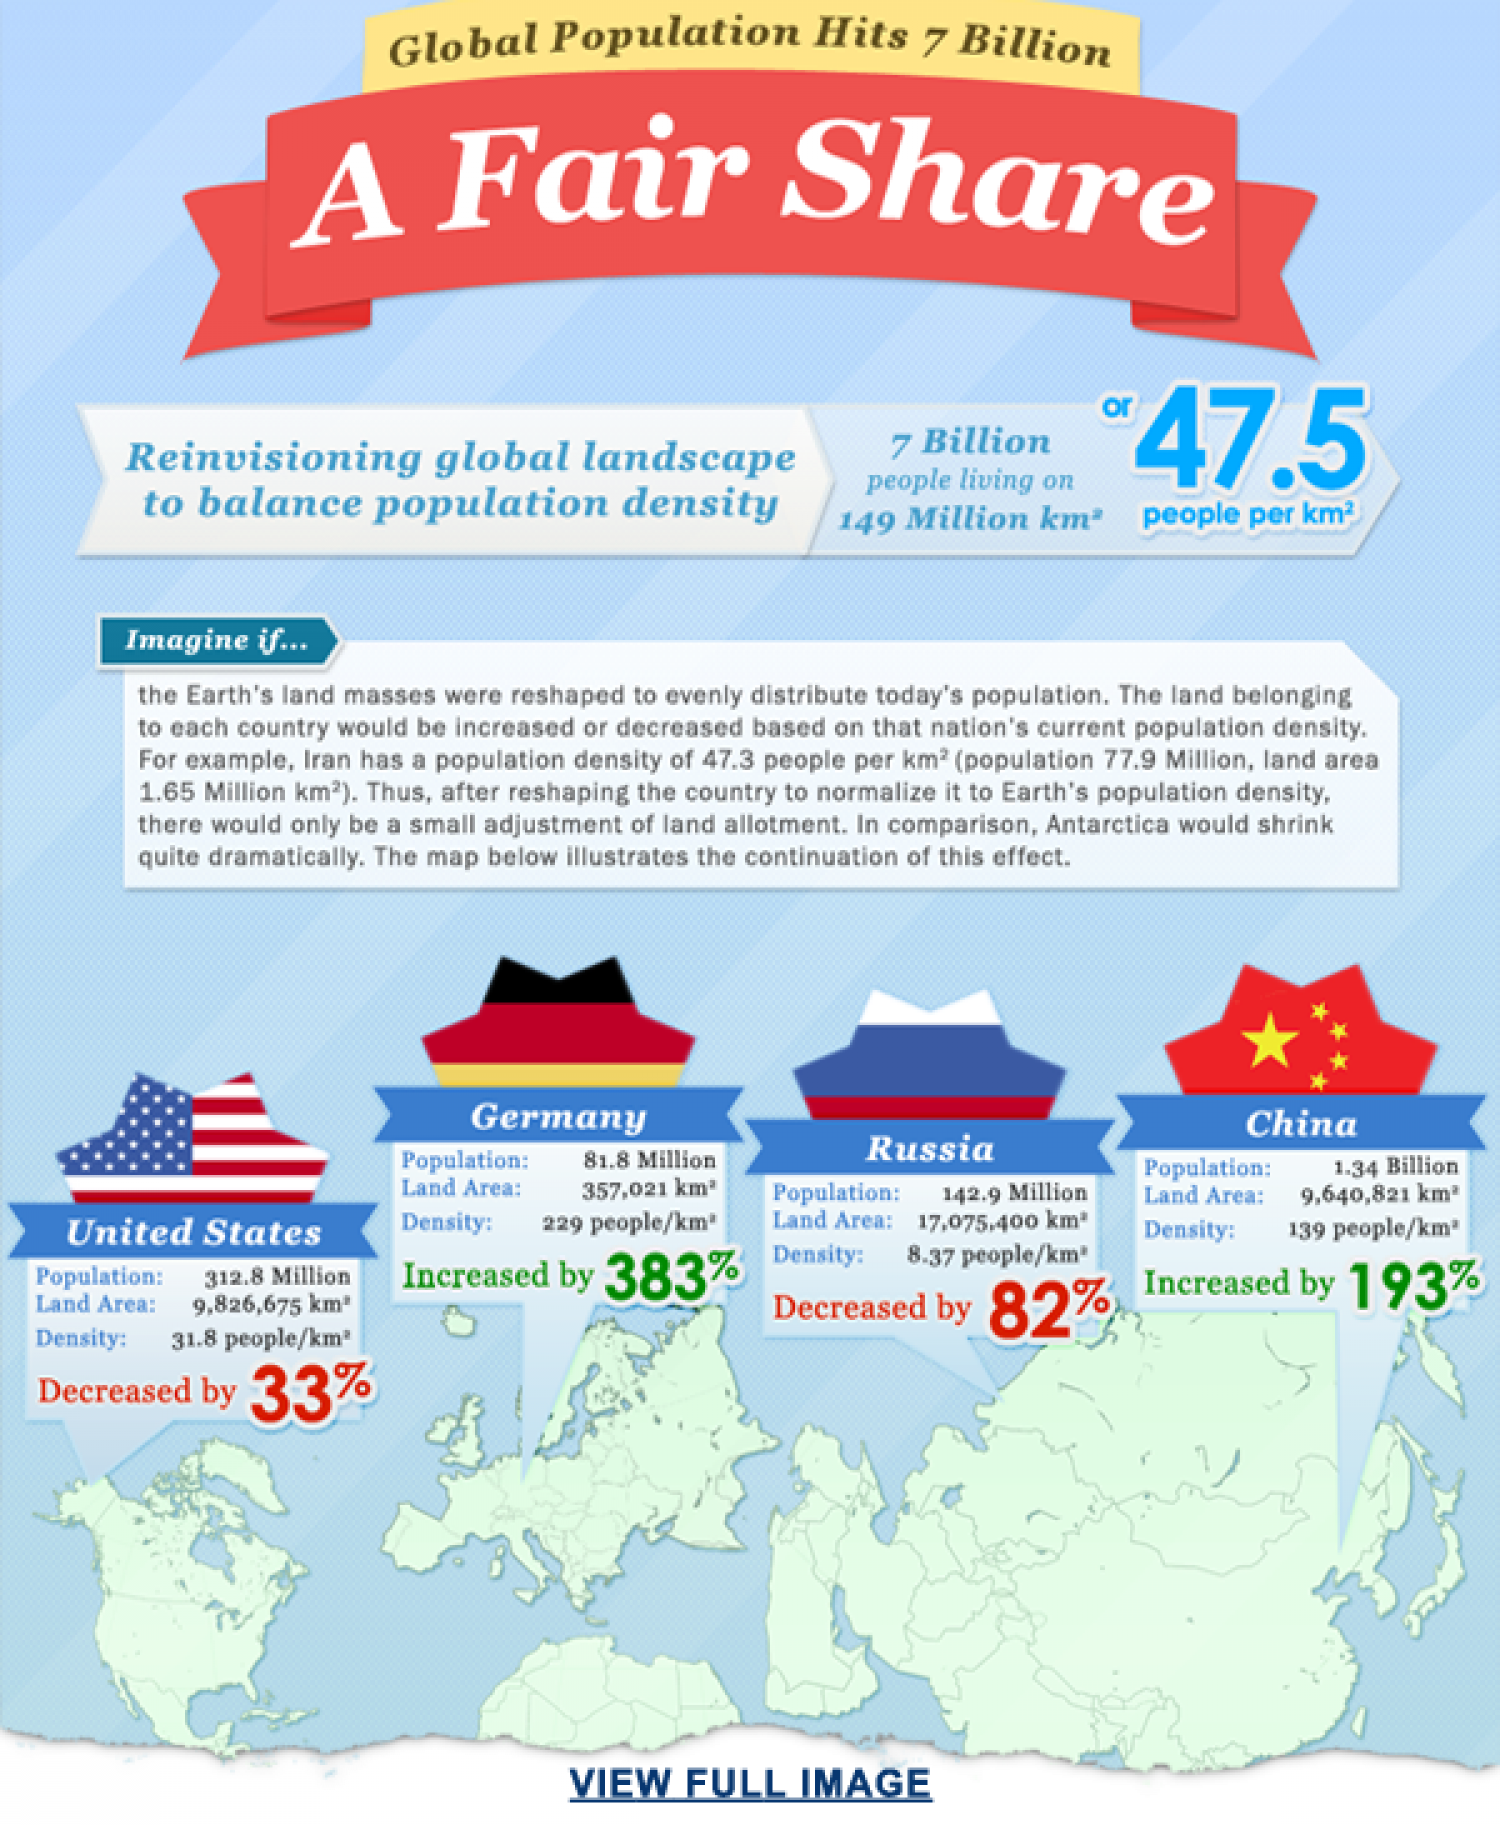 Global Population Hits 7 Billion, A Fair Share Infographic